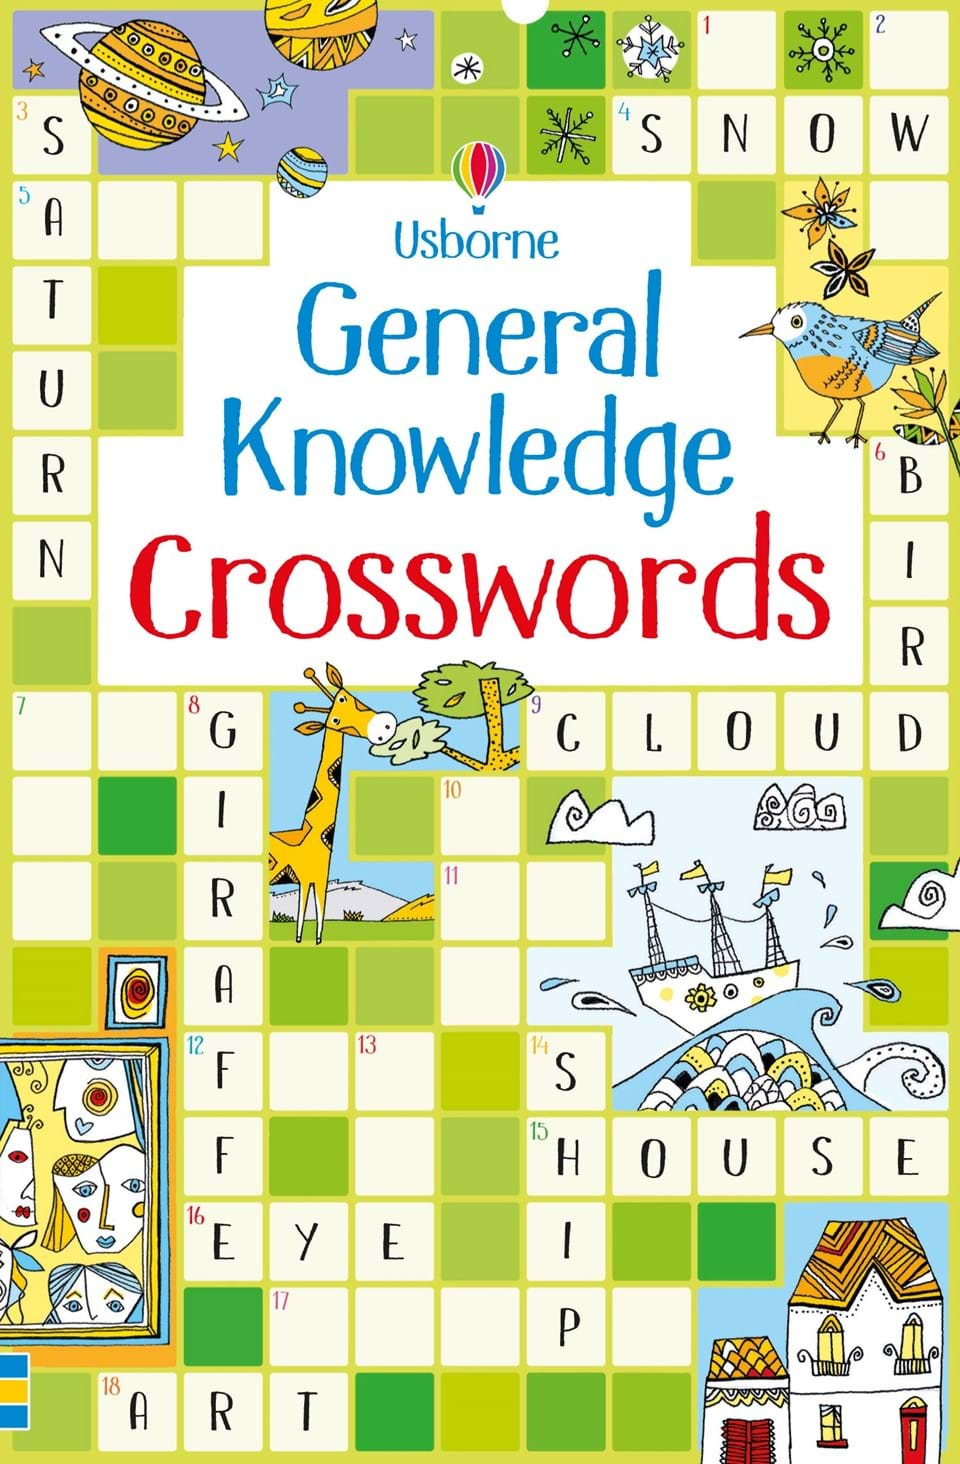 General Knowledge Crosswords At Usborne Childrens Books